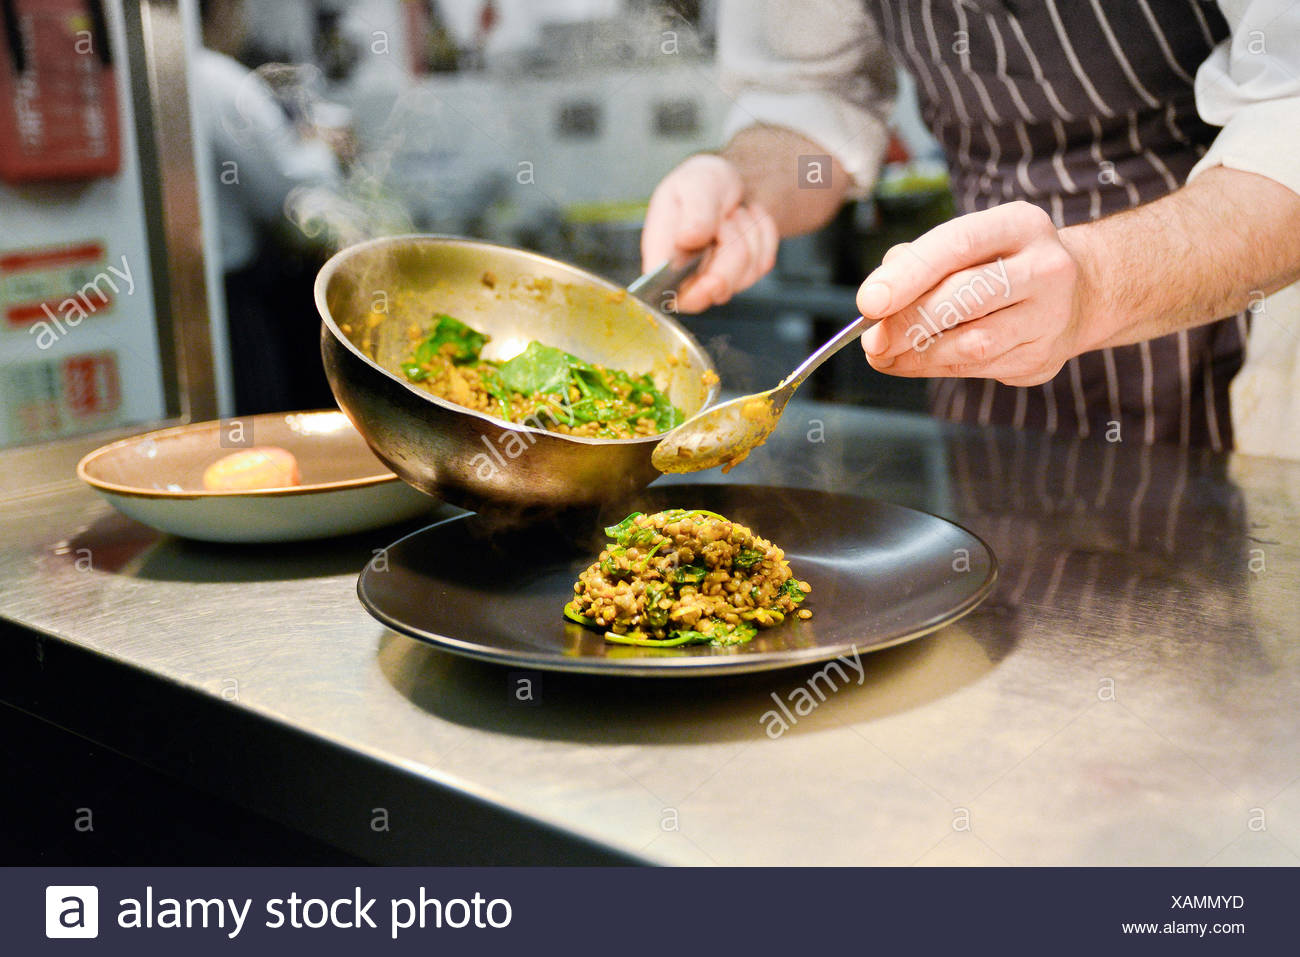 Restaurant chef placing cooked lentil dish on plate - Stock Image